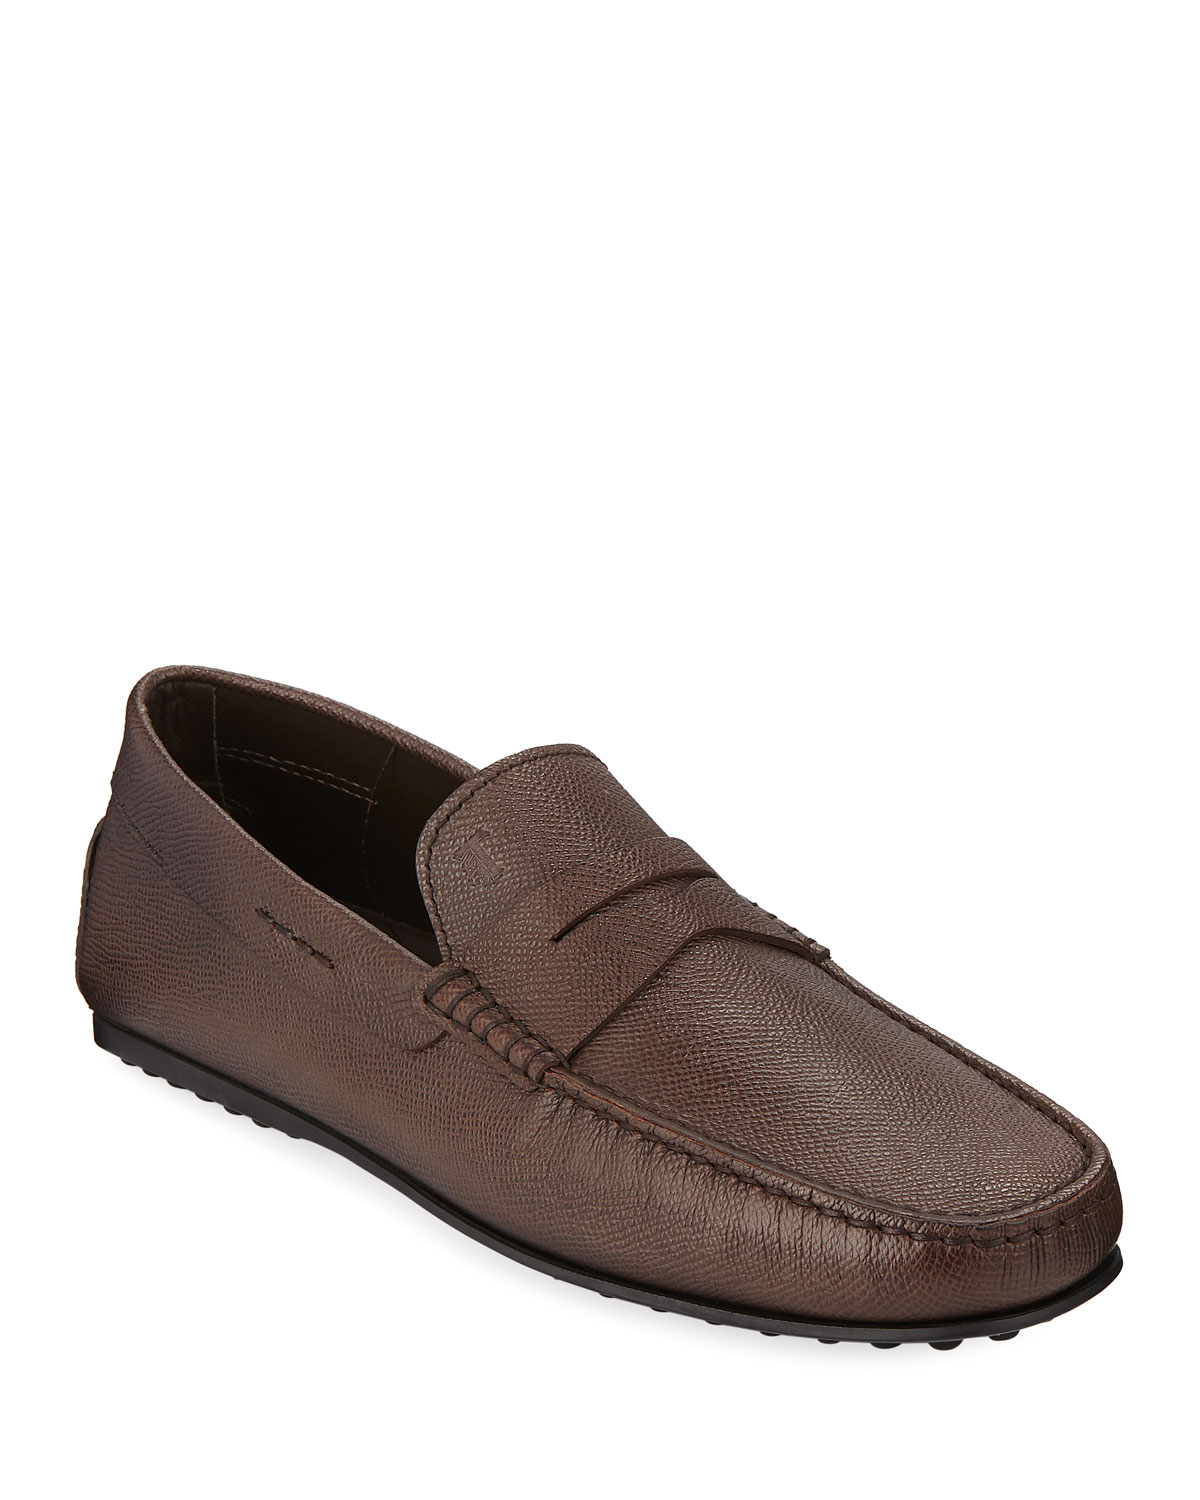 e208f4d8b94 Tod s Men s City Gommini Leather Penny Loafer